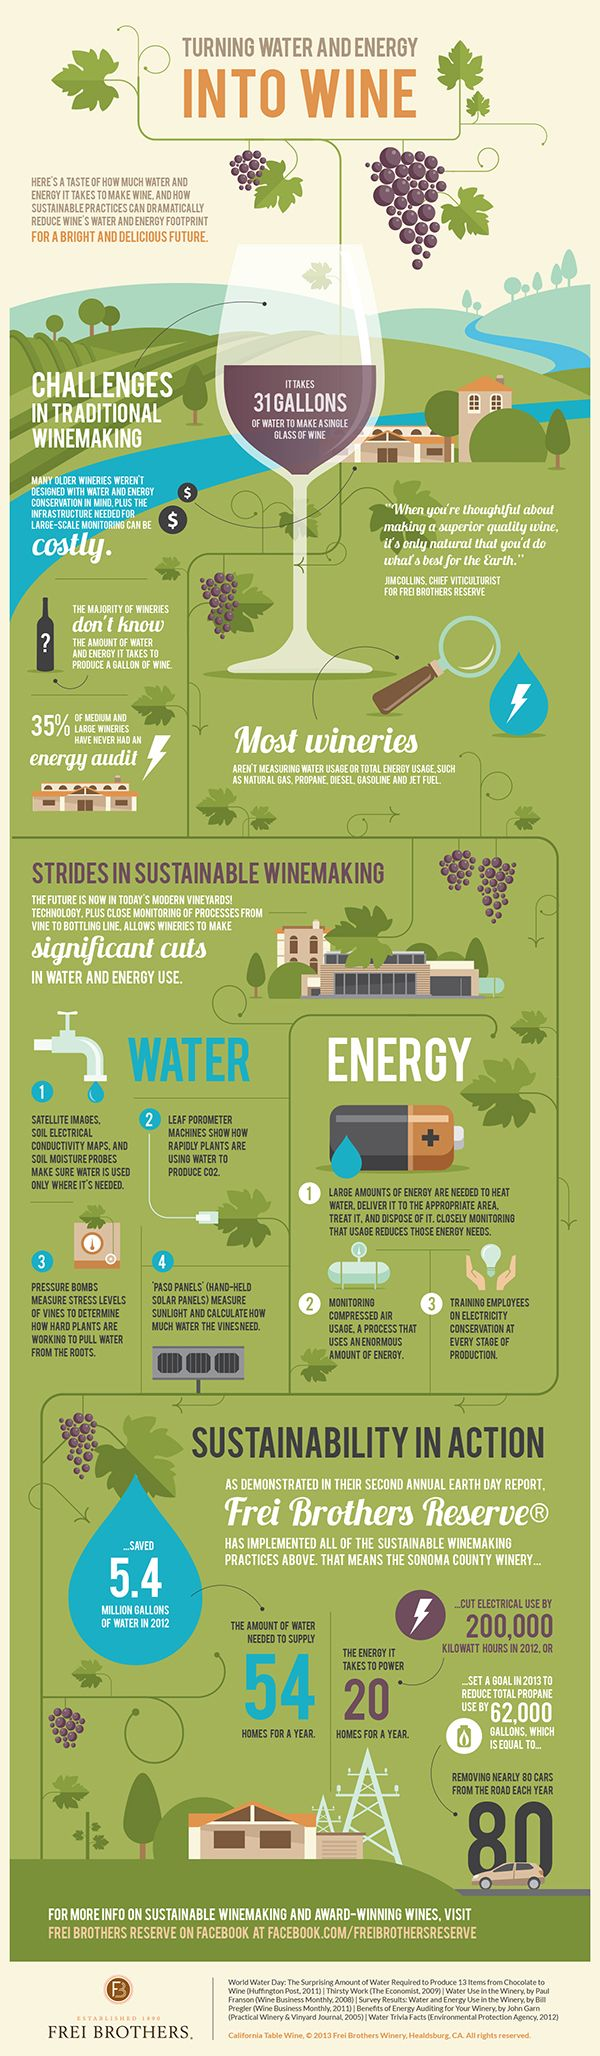 www.infographicbox.com #INFOGRAPHIC Turning Water and Energy Into Wine: Here's a taste of how much water and energy it takes to make wine, and how sustainable practices can dramatically reduce wine's water and energy footprint for a bright and delicious future.